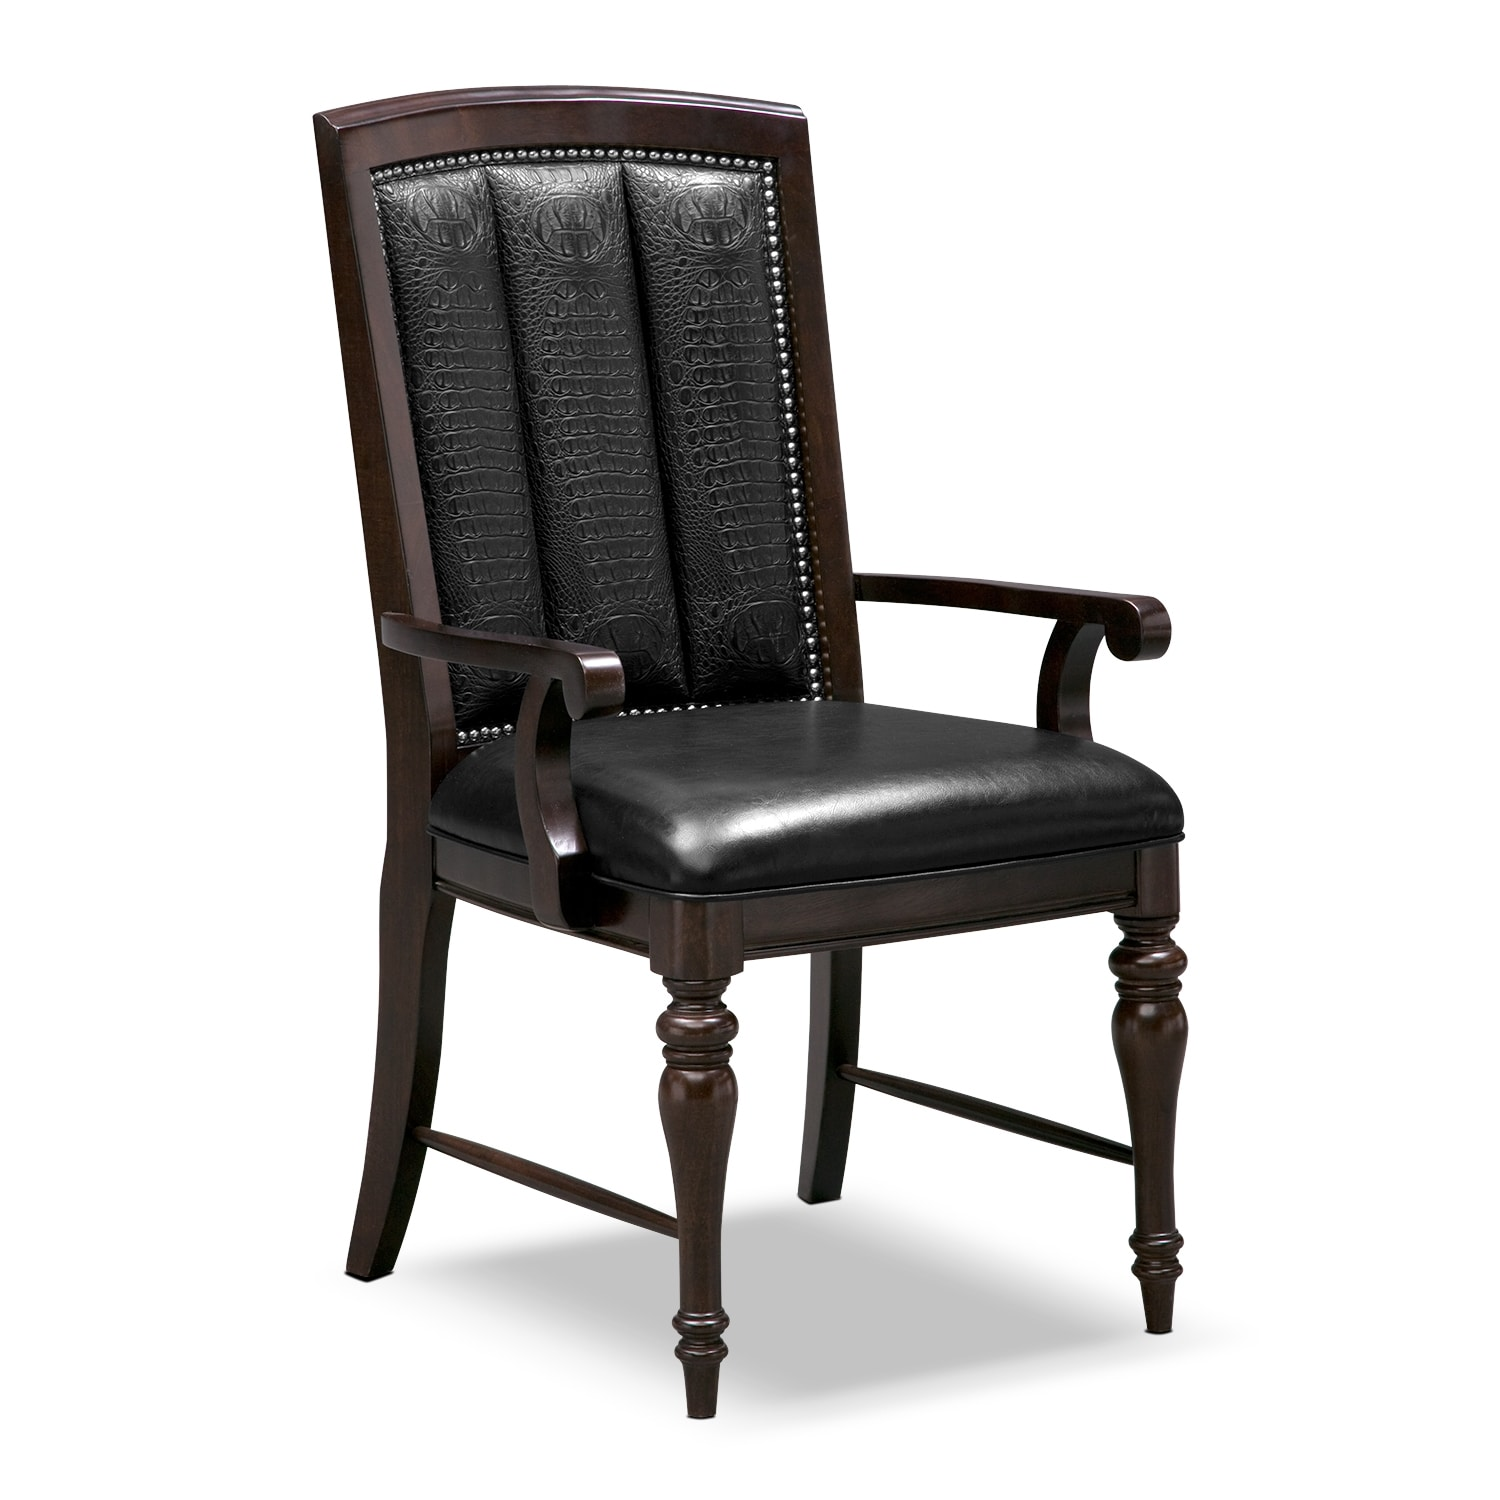 Dining Room Furniture - Esquire Arm Chair - Cherry